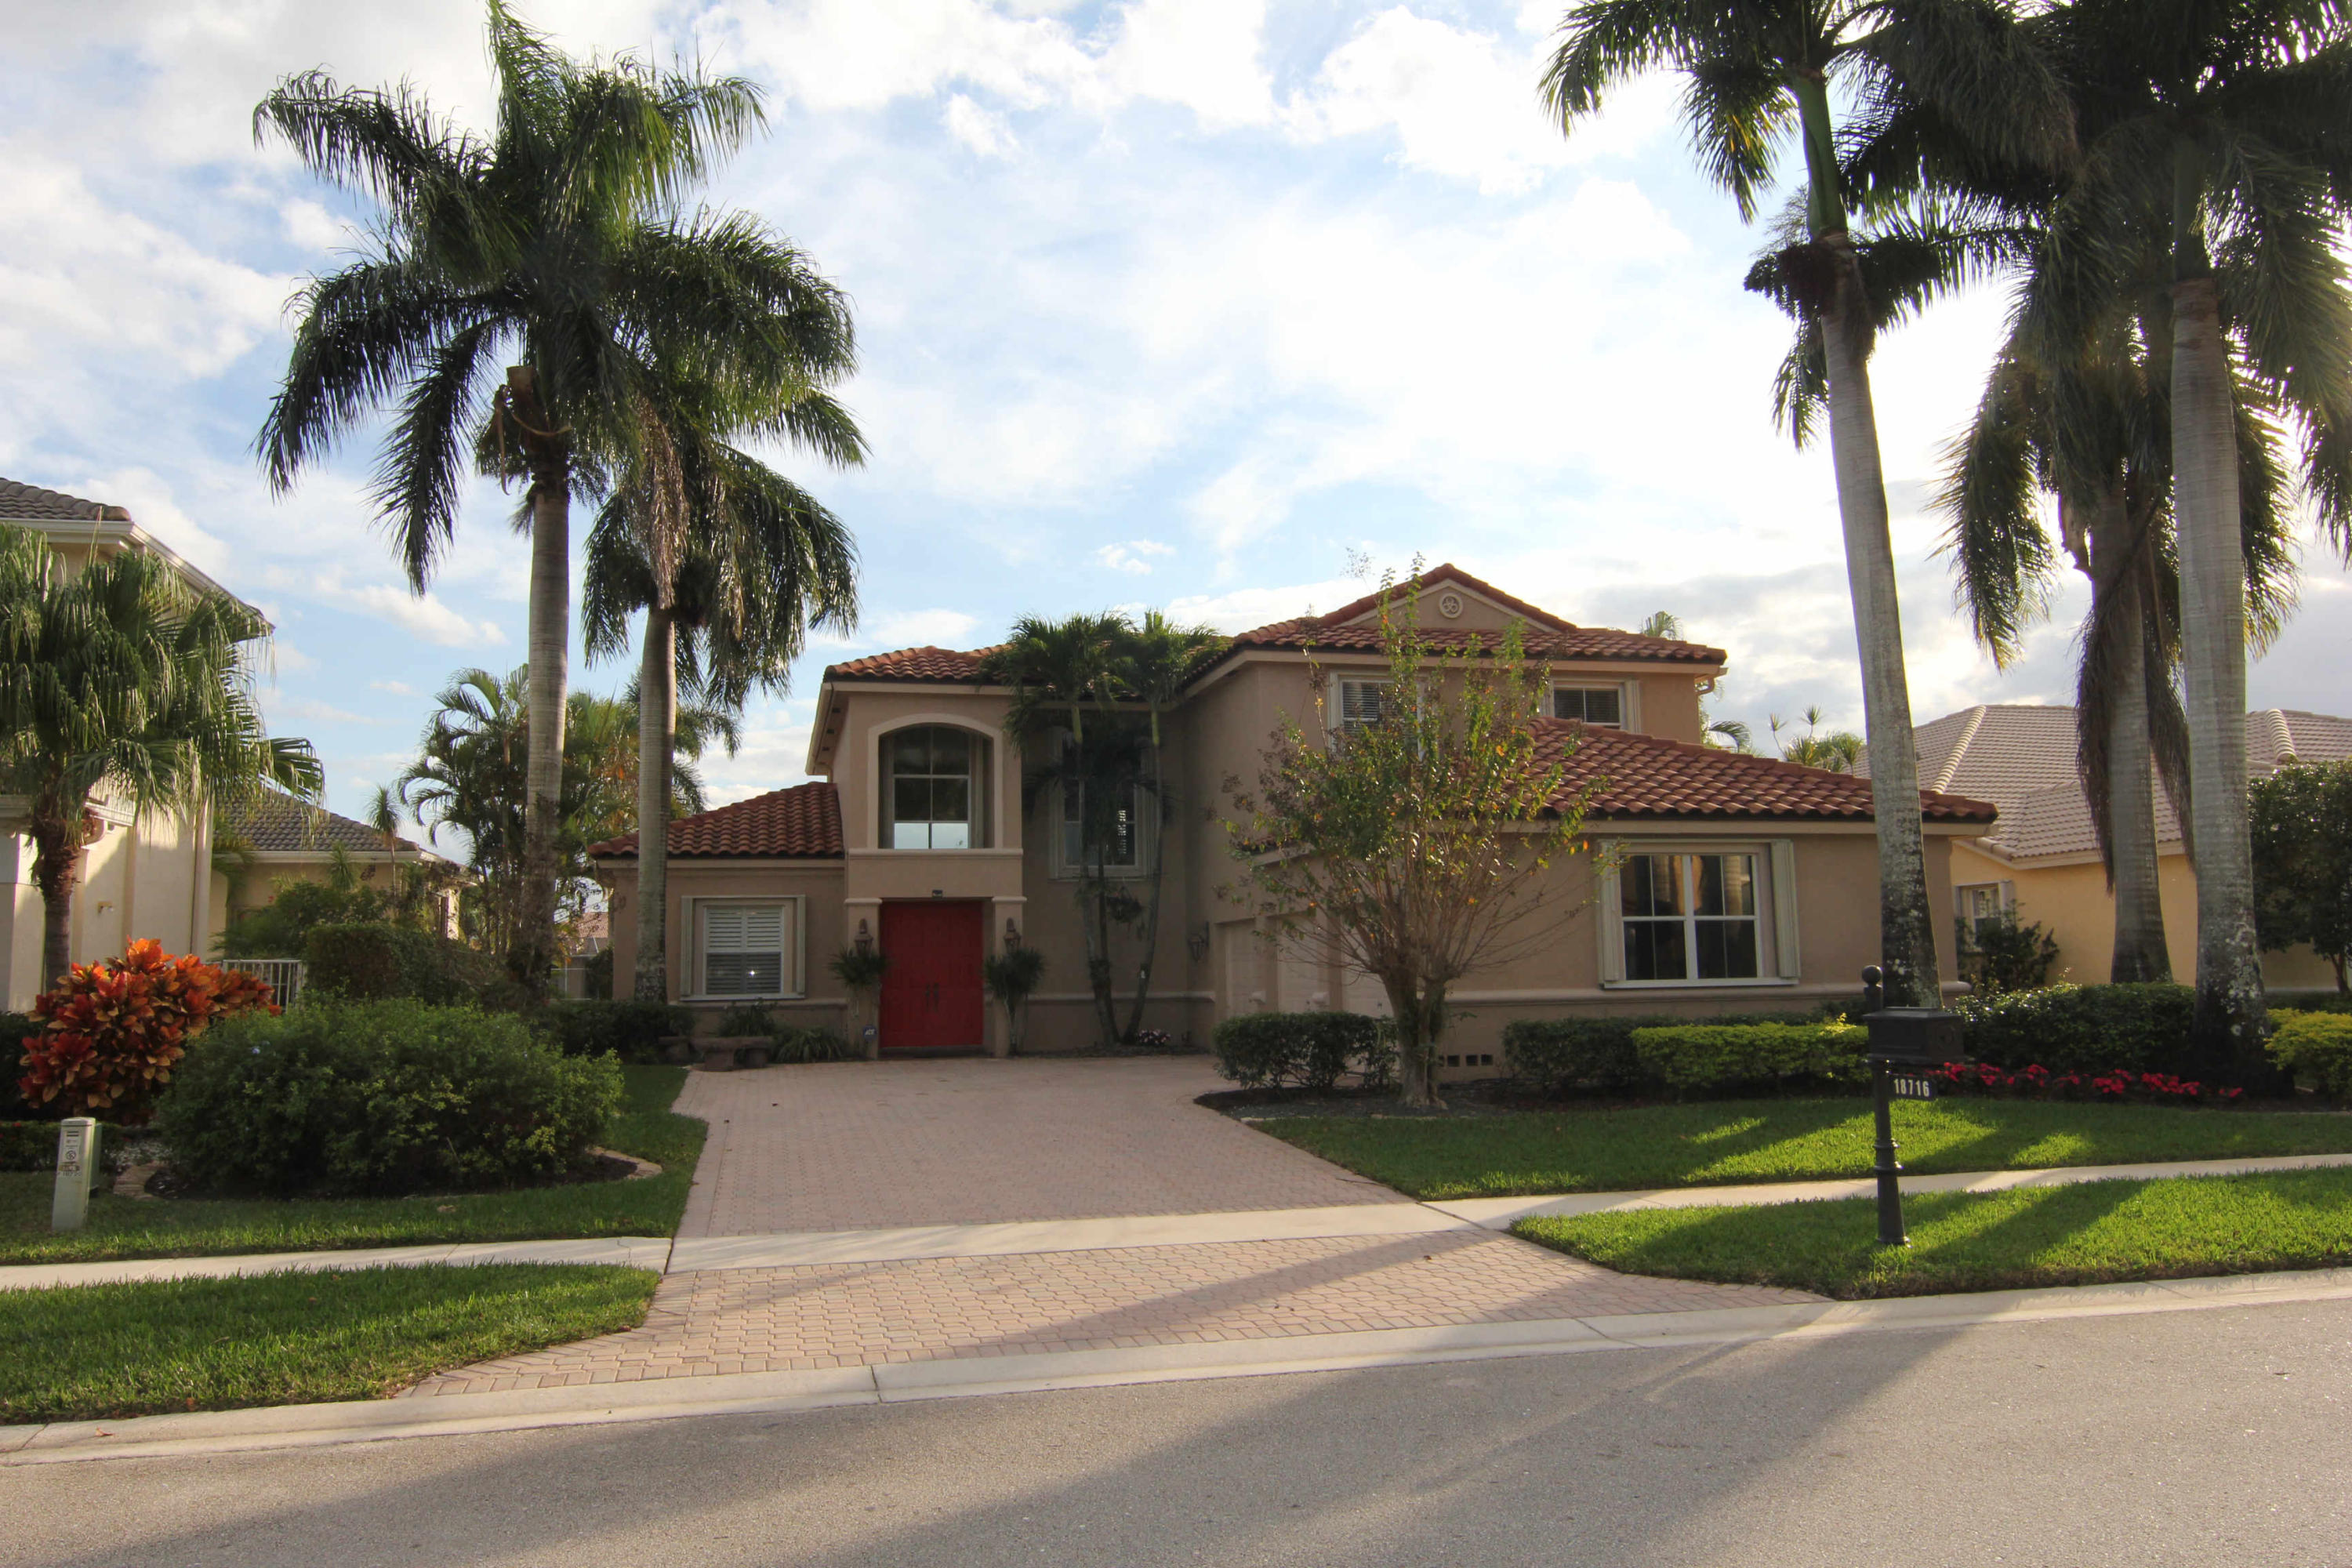 Home for sale in Shores Boca Raton Florida